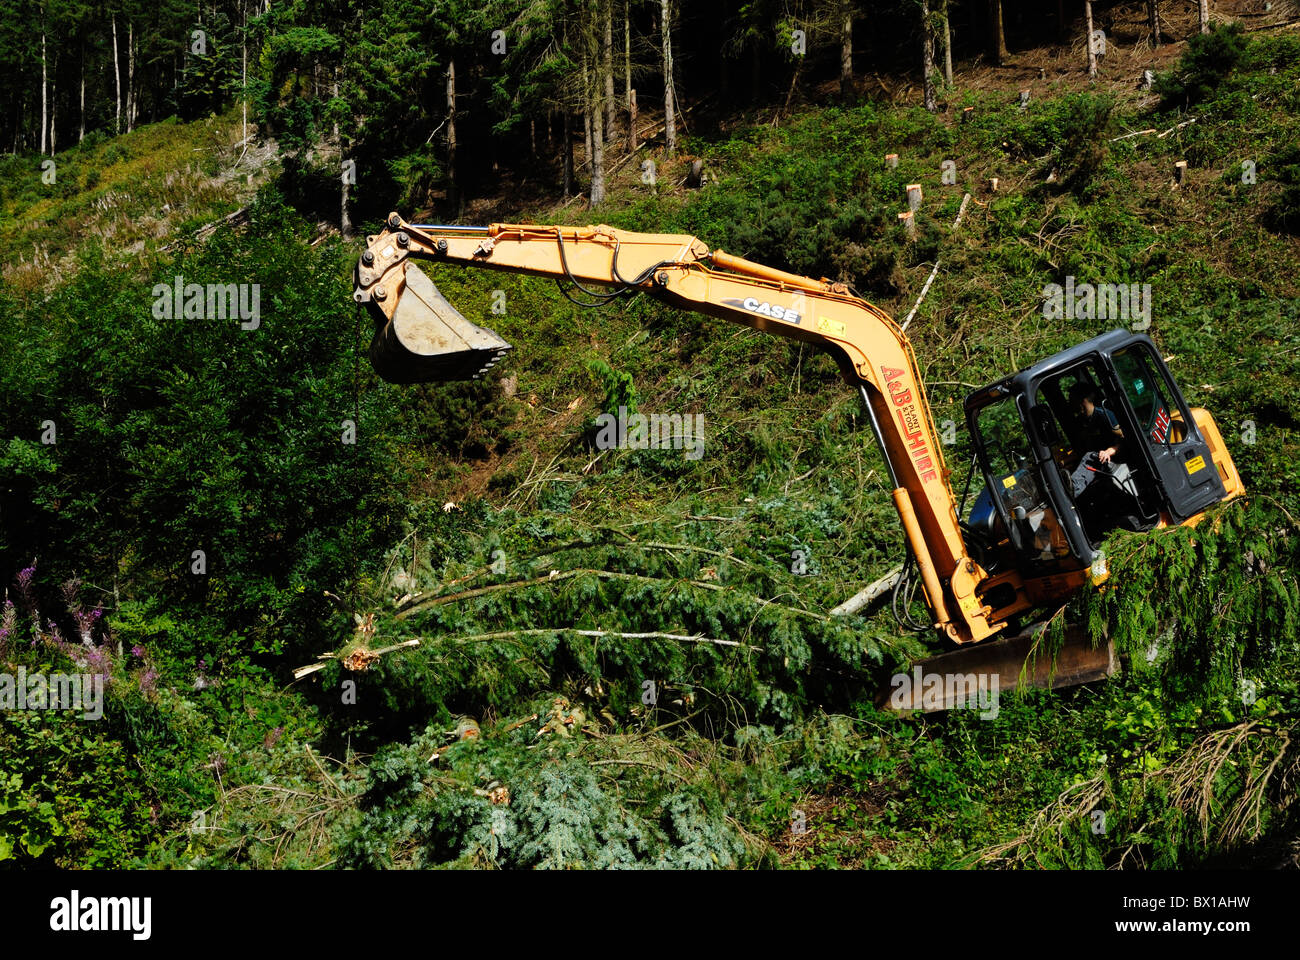 Tracked excavating machine, clearing ground in woodland, Wales - Stock Image